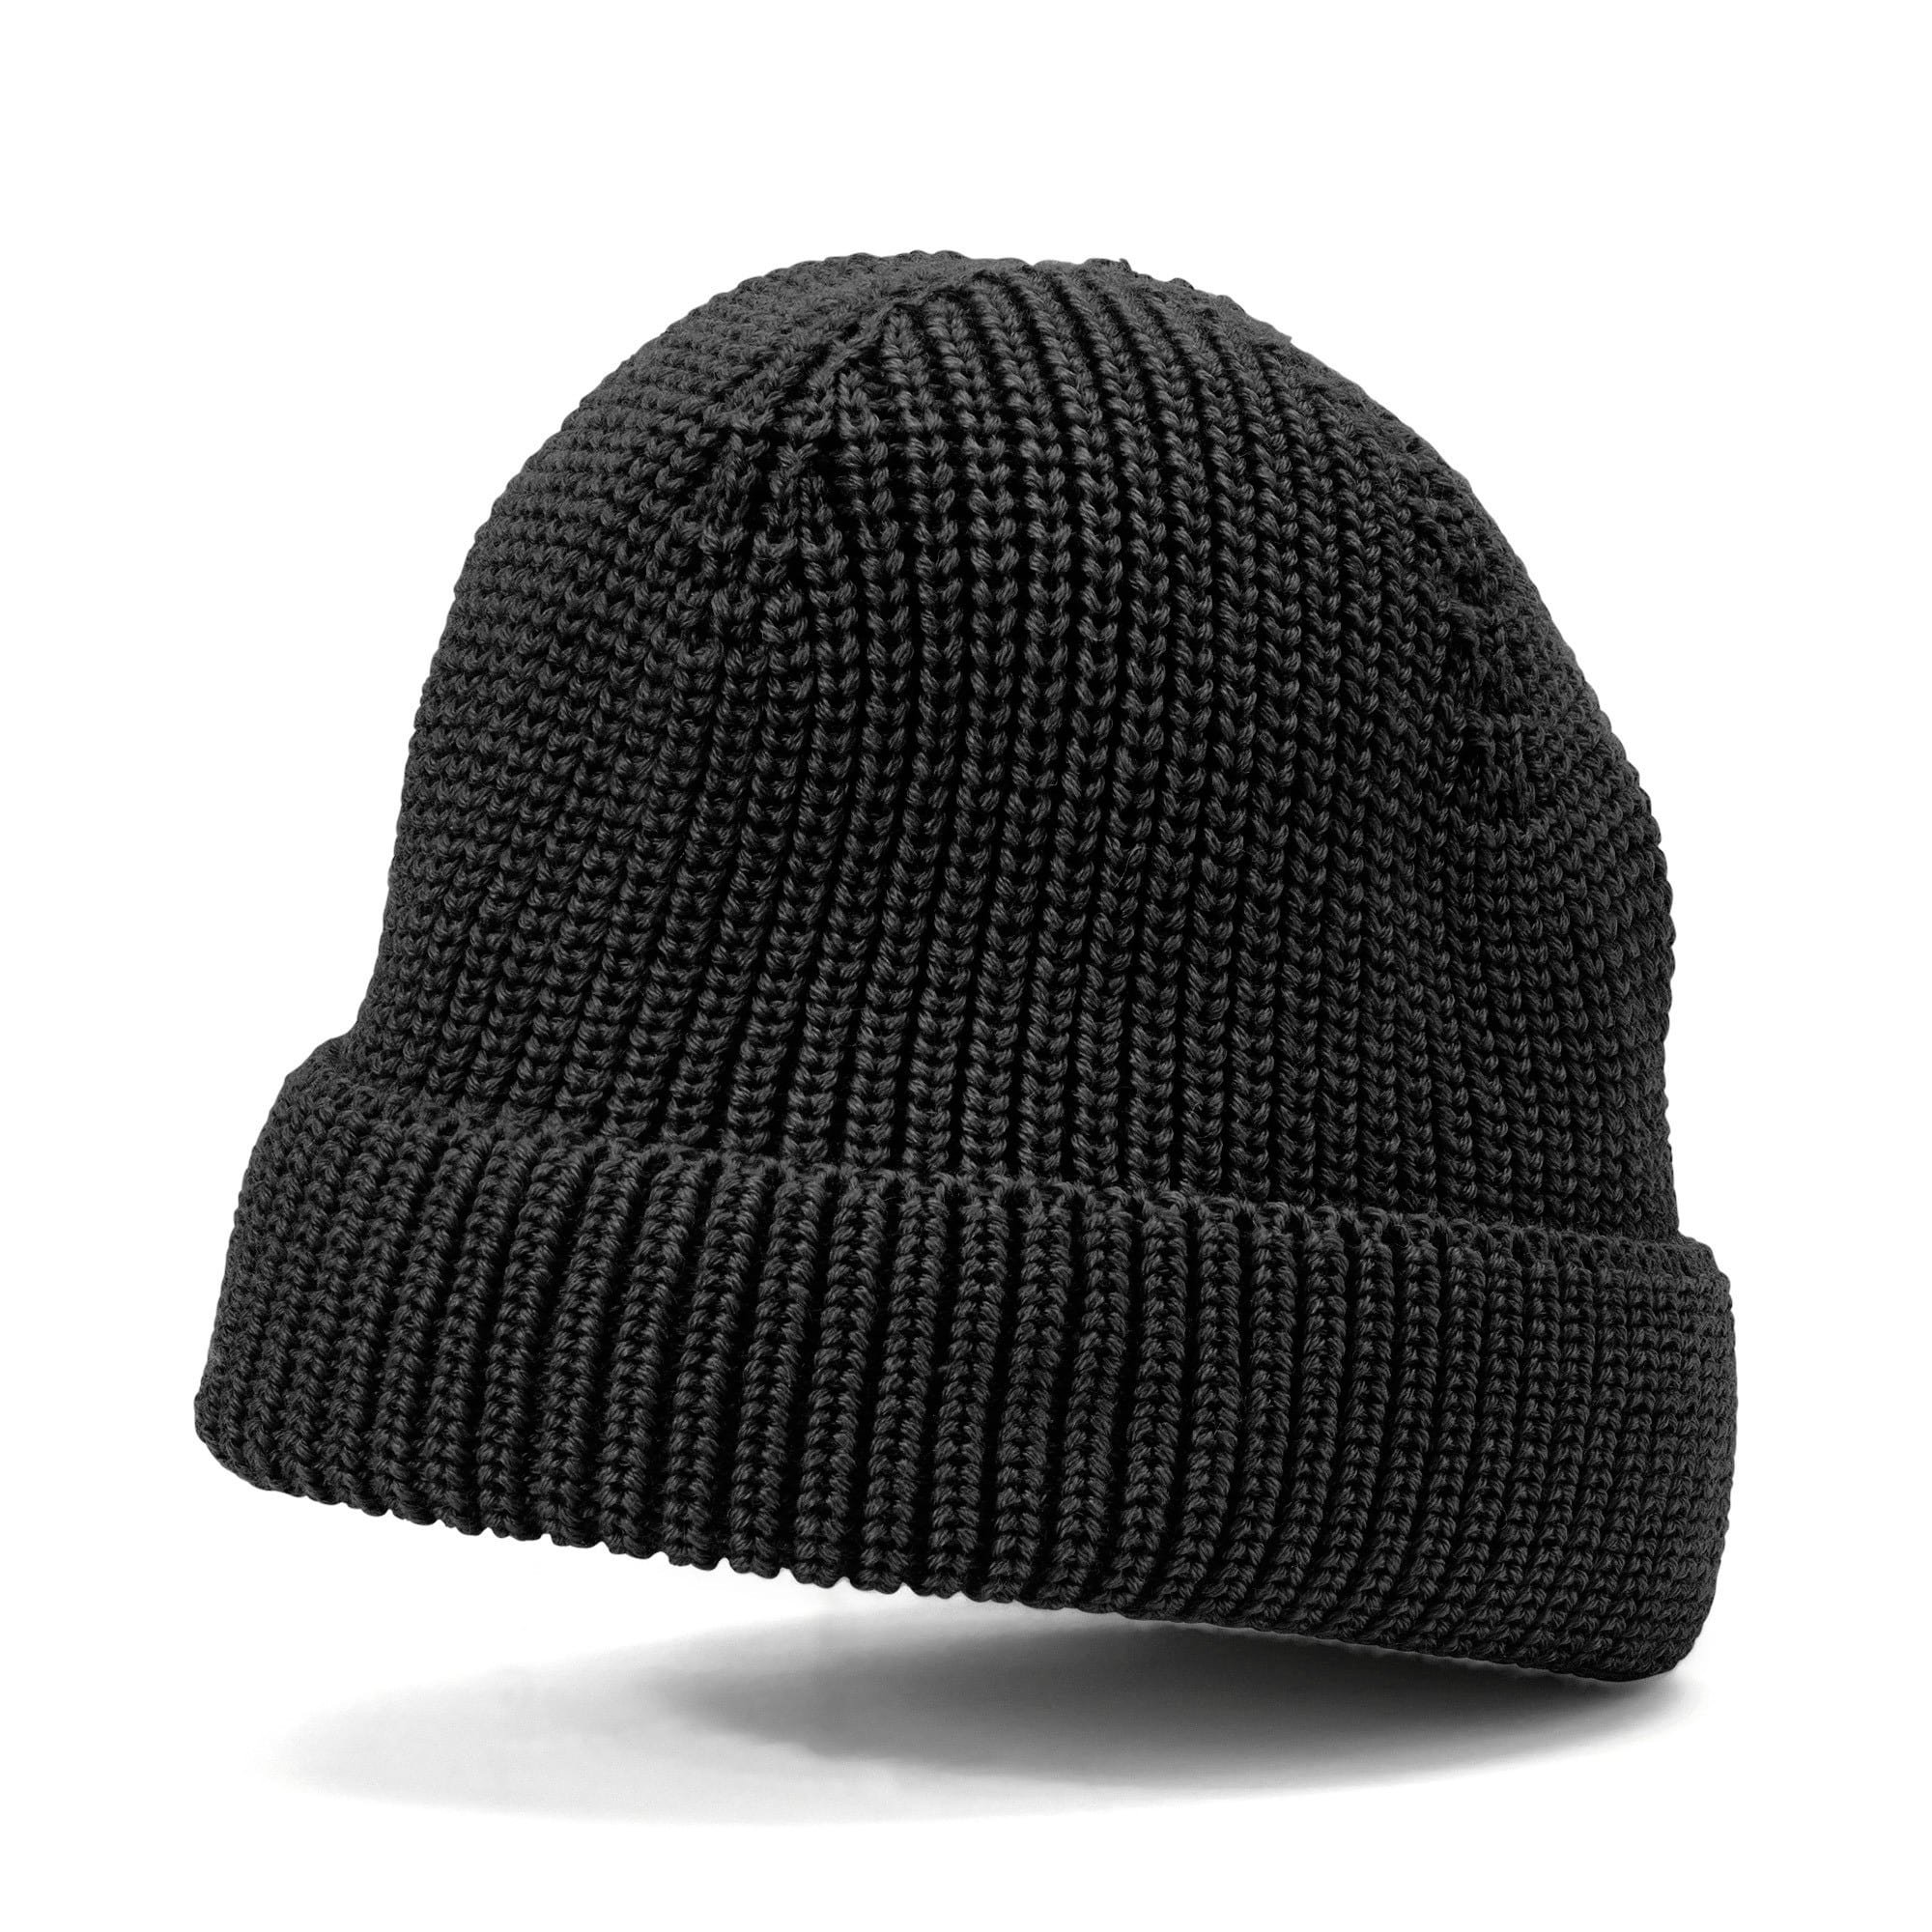 Thumbnail 1 of PUMA x HELLY HANSEN Beanie, Puma Black, medium